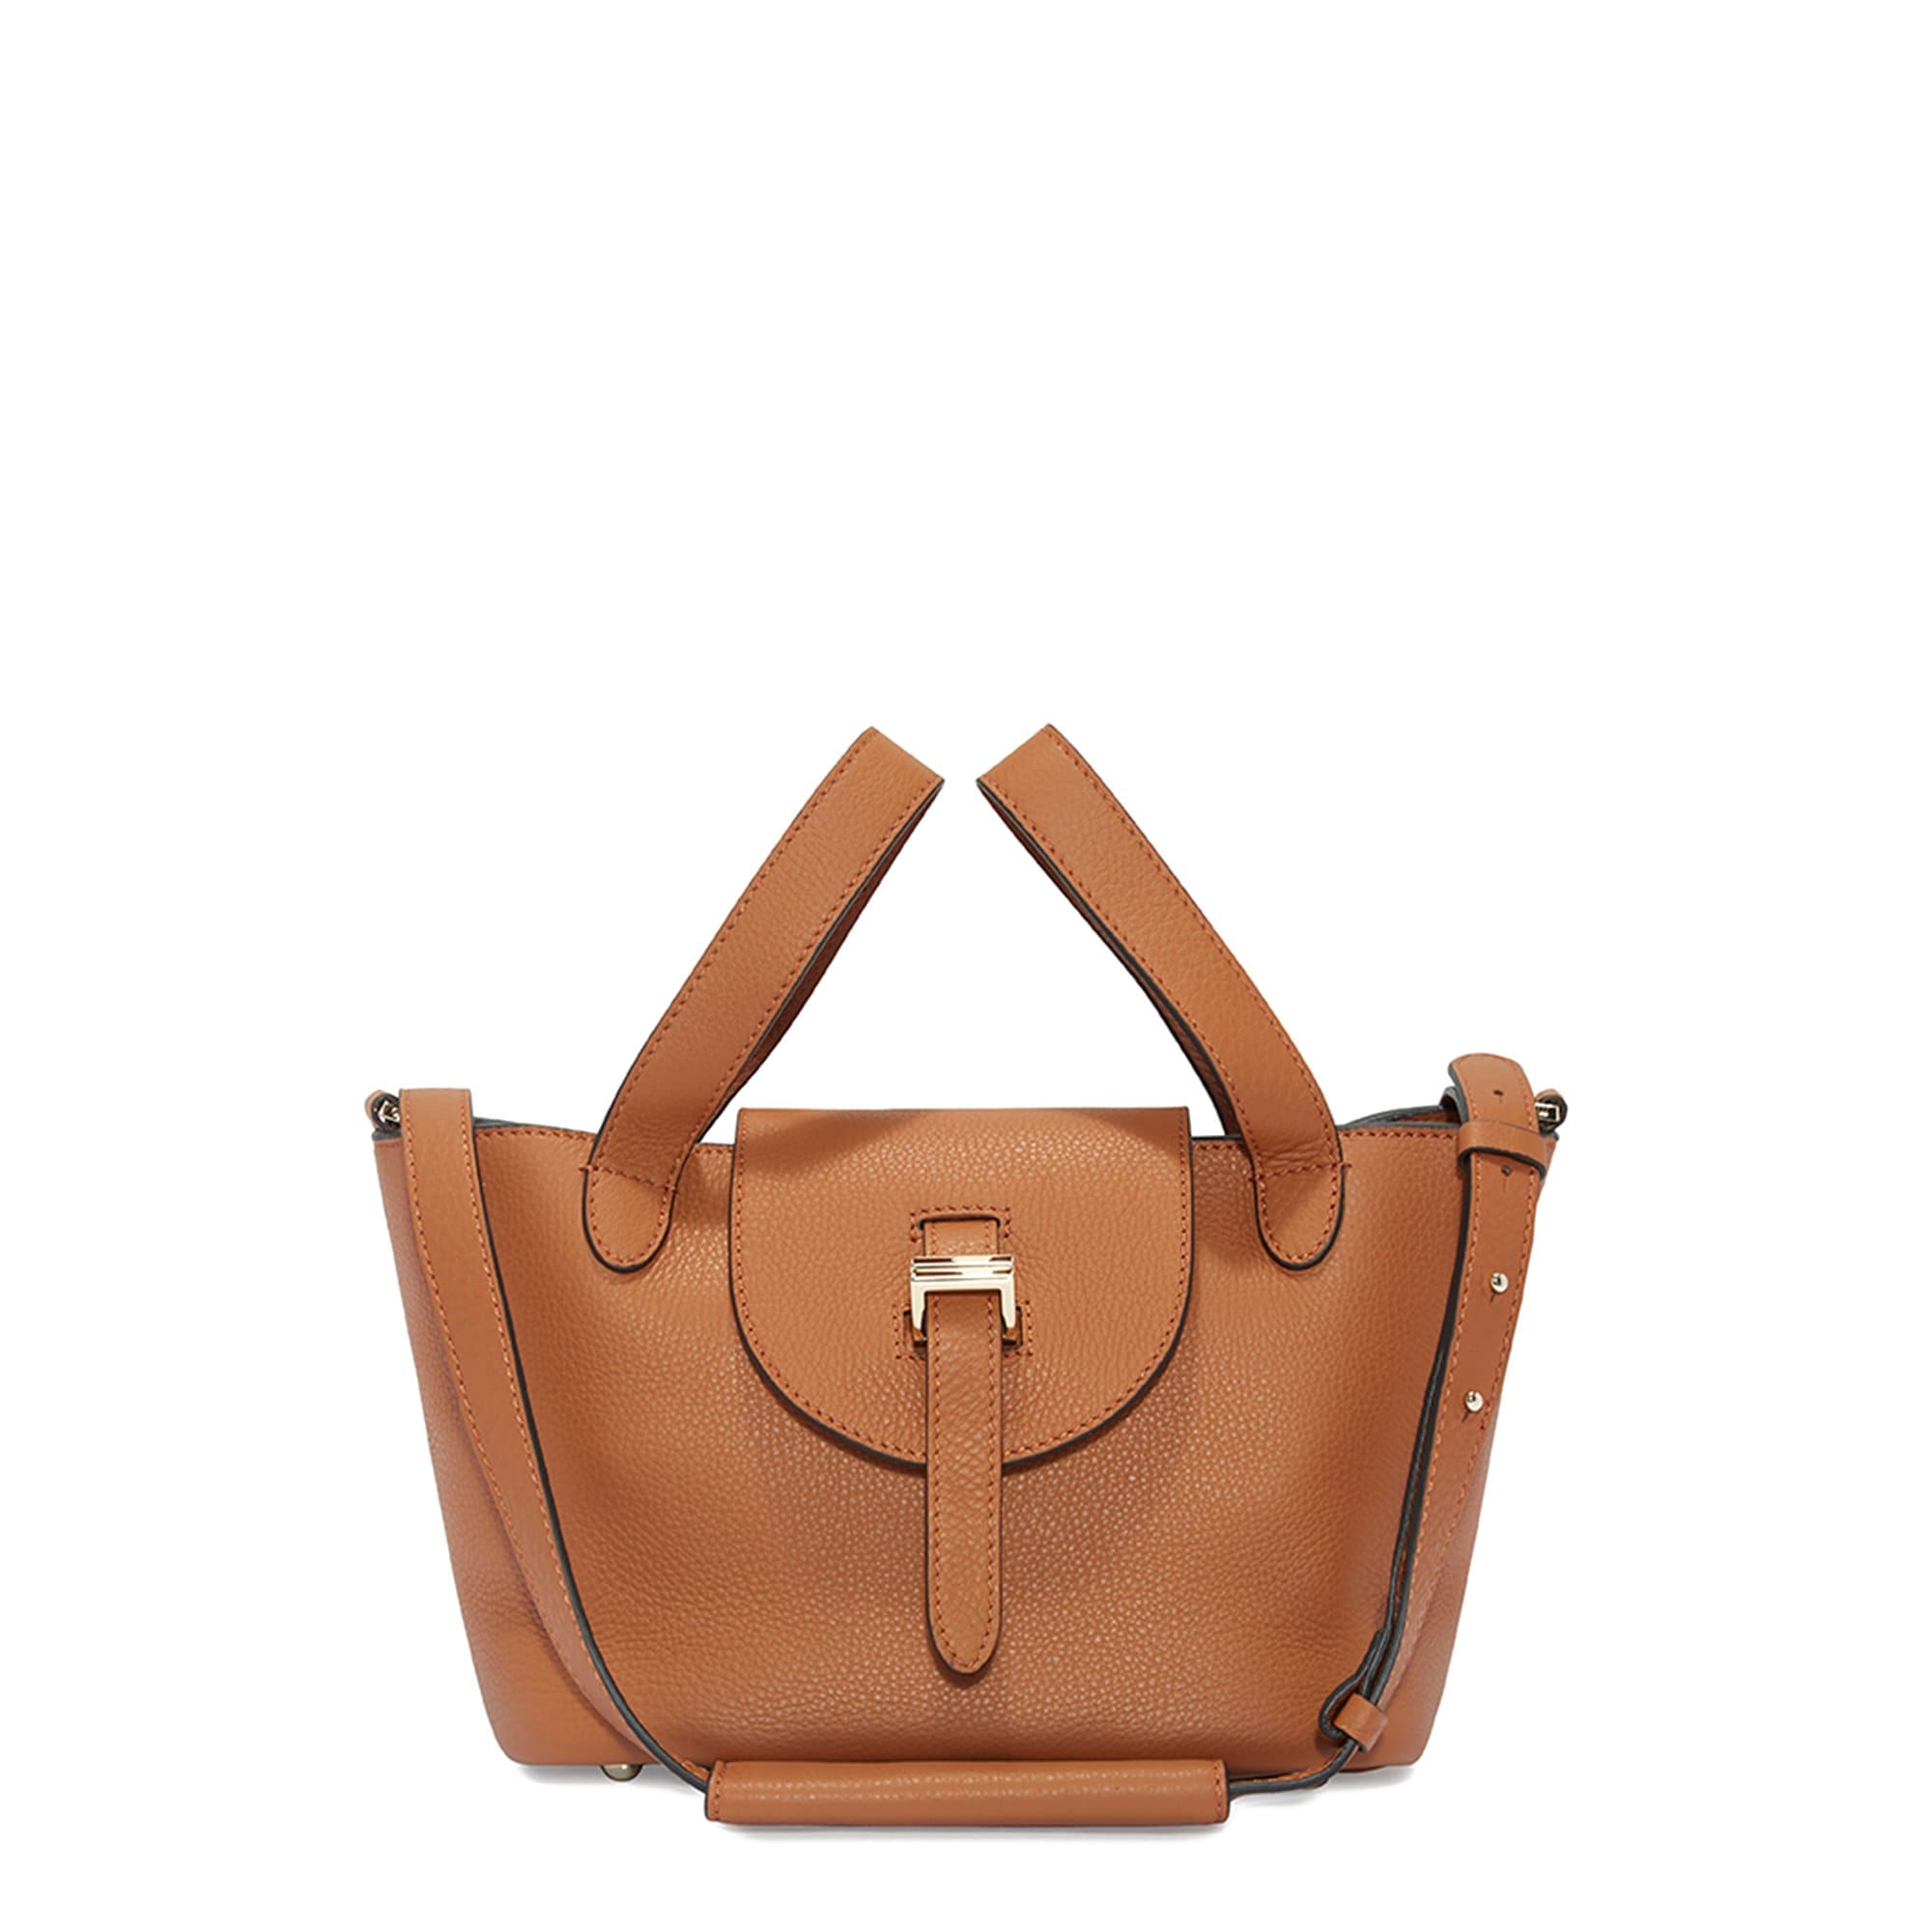 Thela Mini Tan Brown Cross Body Bag for Women - meli melo Official